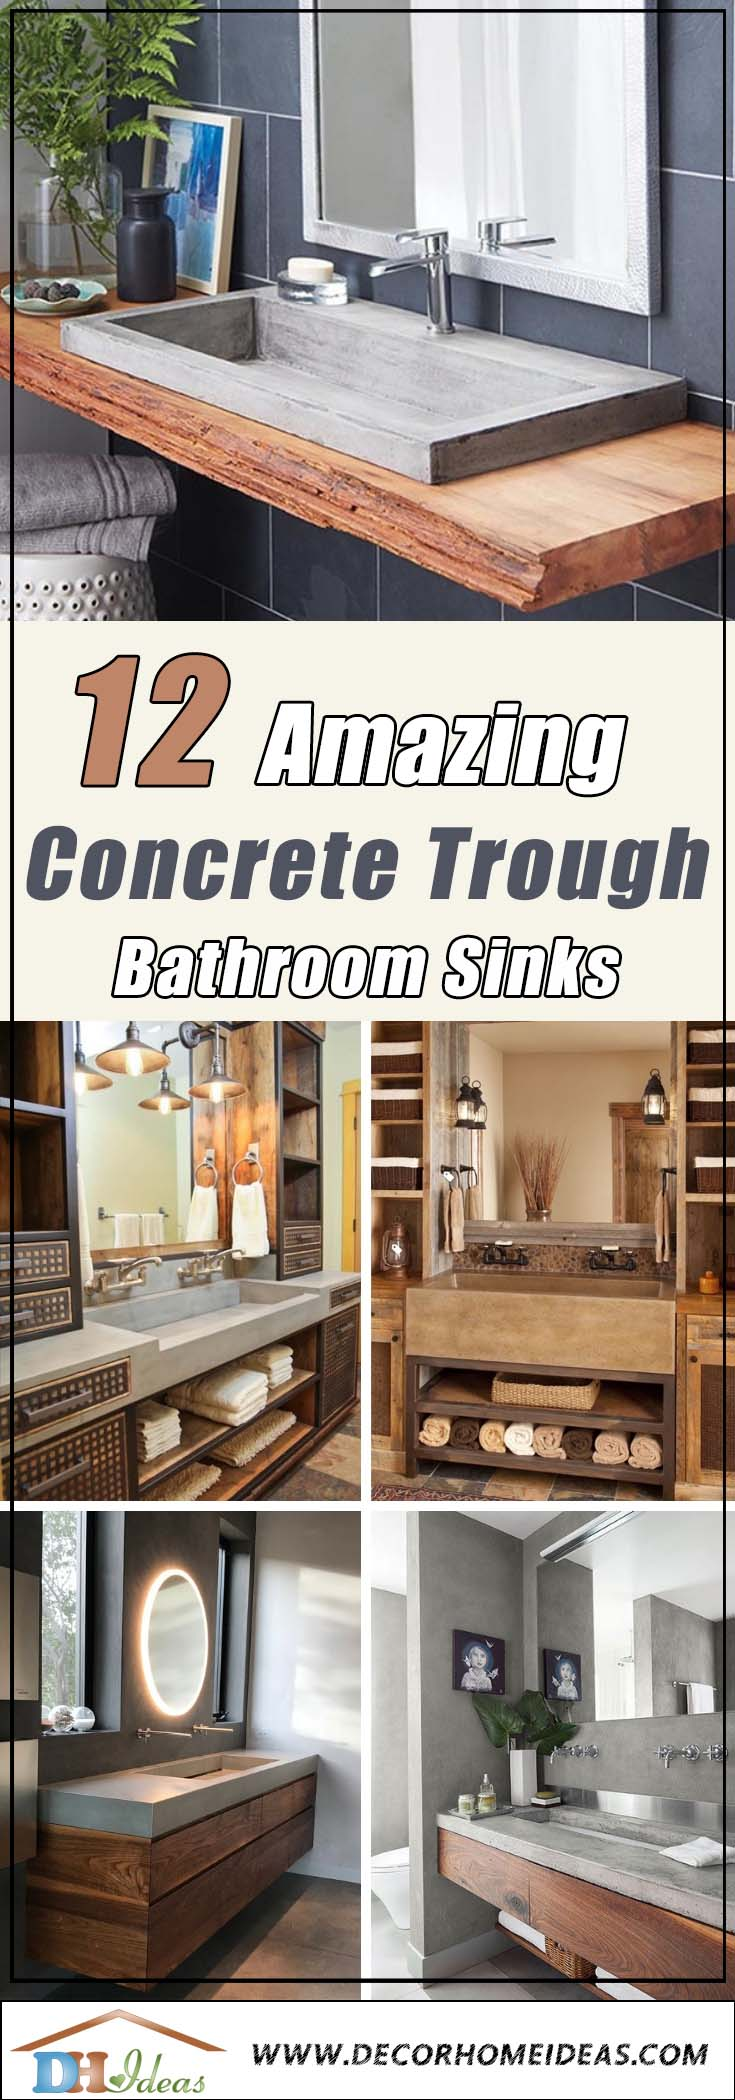 Best Concrete Trough Bathroom Sink Ideas